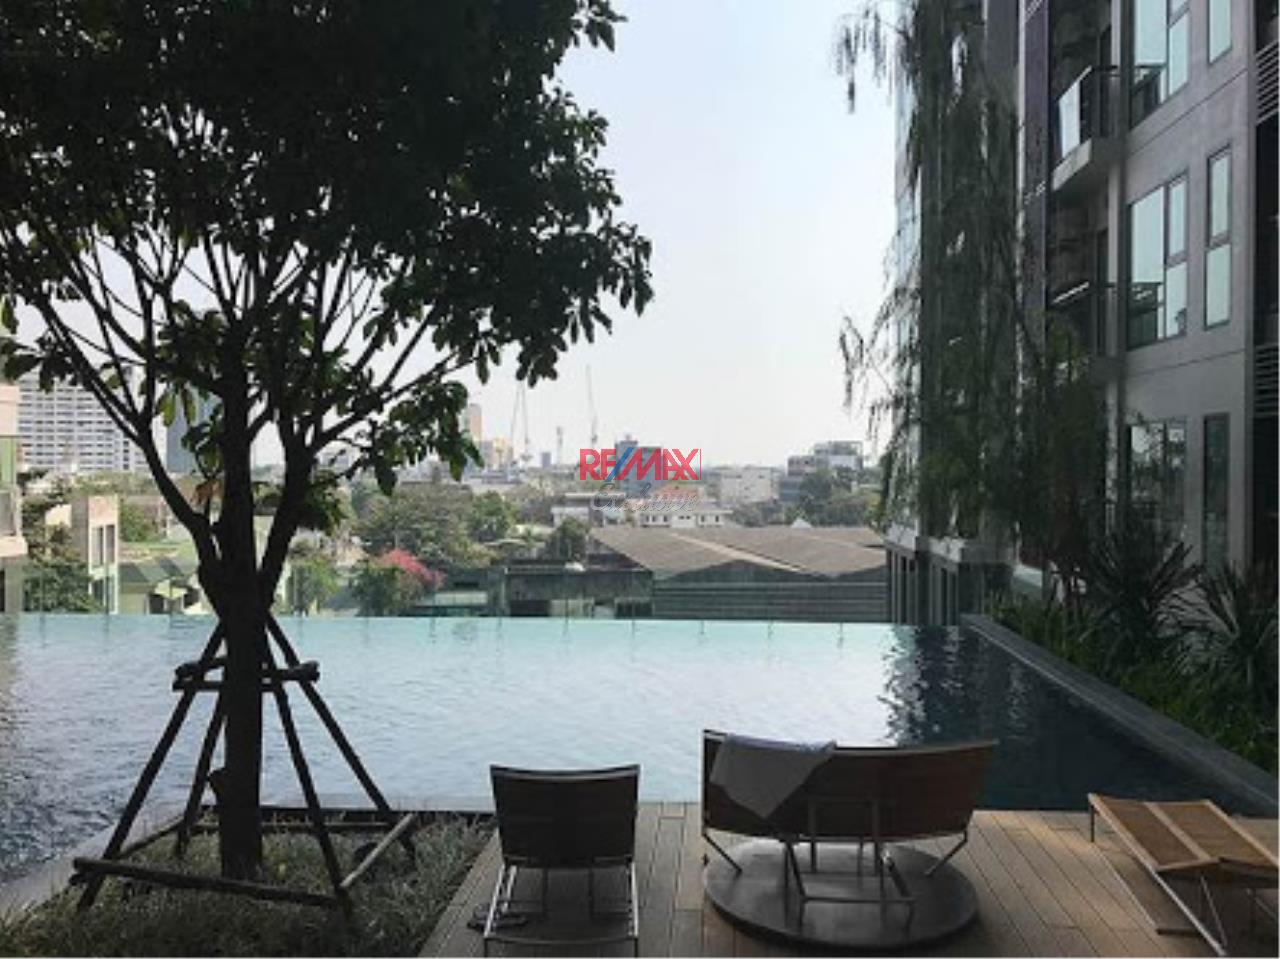 RE/MAX Exclusive Agency's Rhythm Sukhumvit 36-38 1 Bedroom, 42 Sqm., For Rent 35,000 THB!! 10